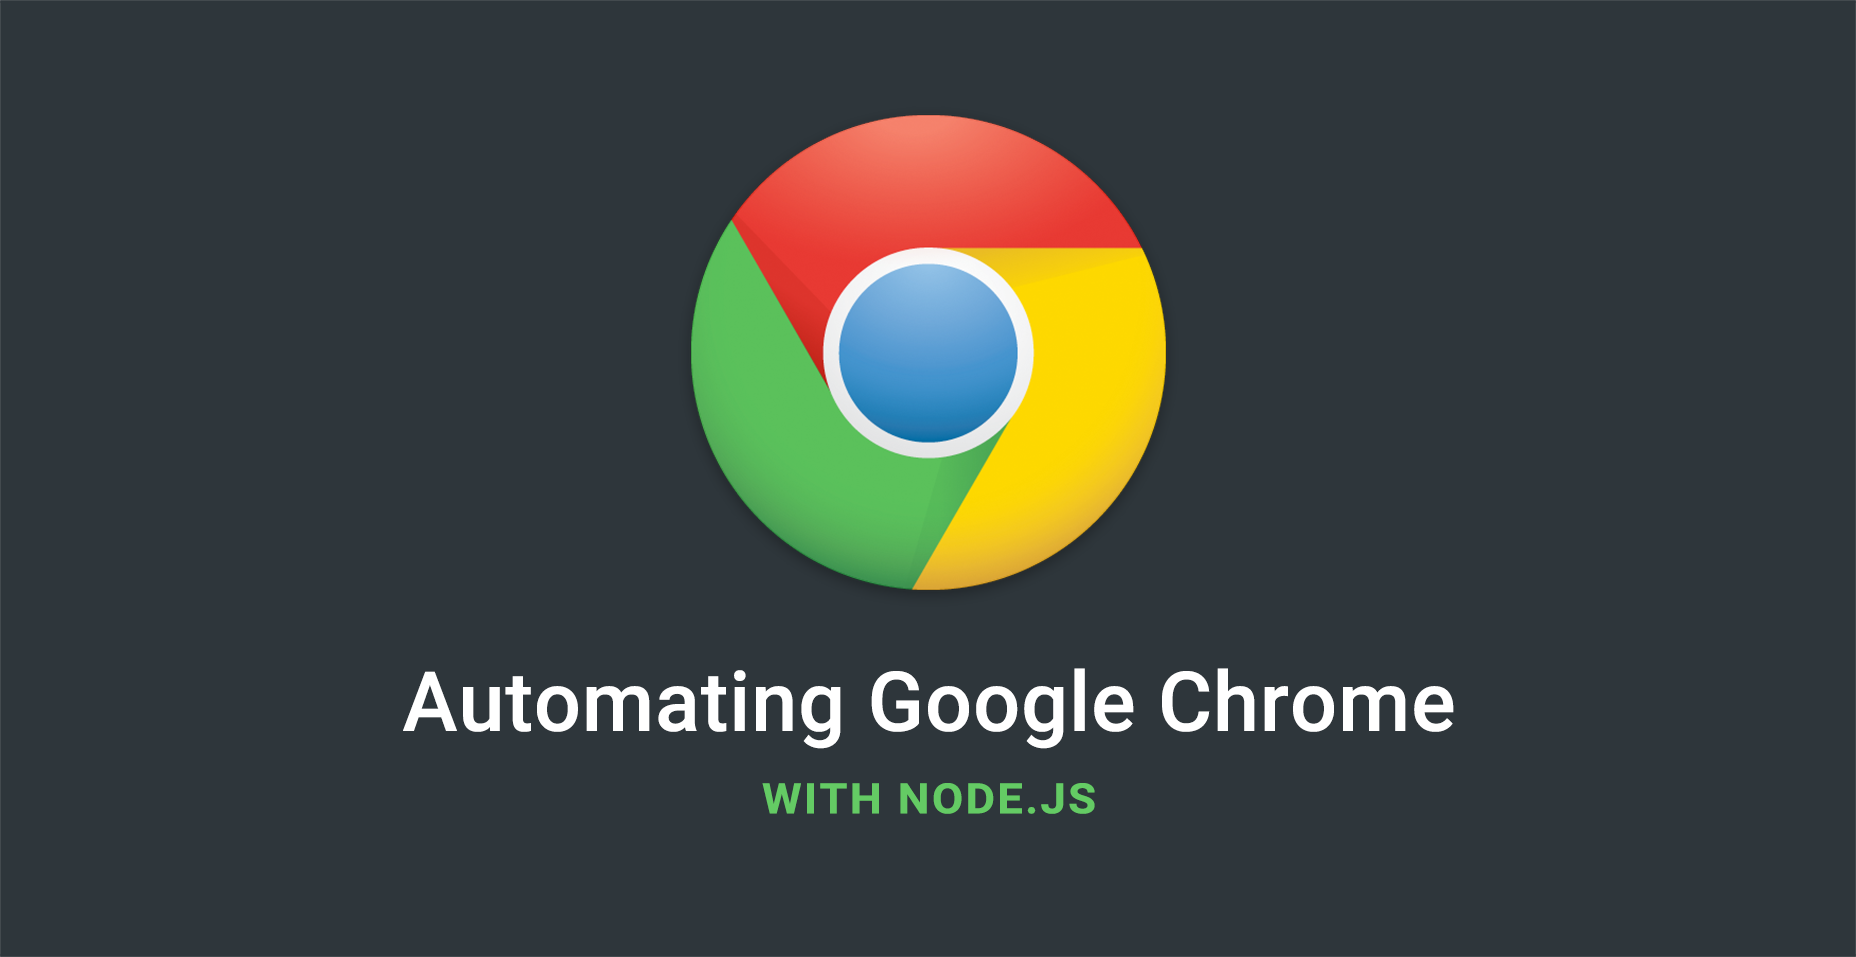 Automating Google Chrome with Node.js